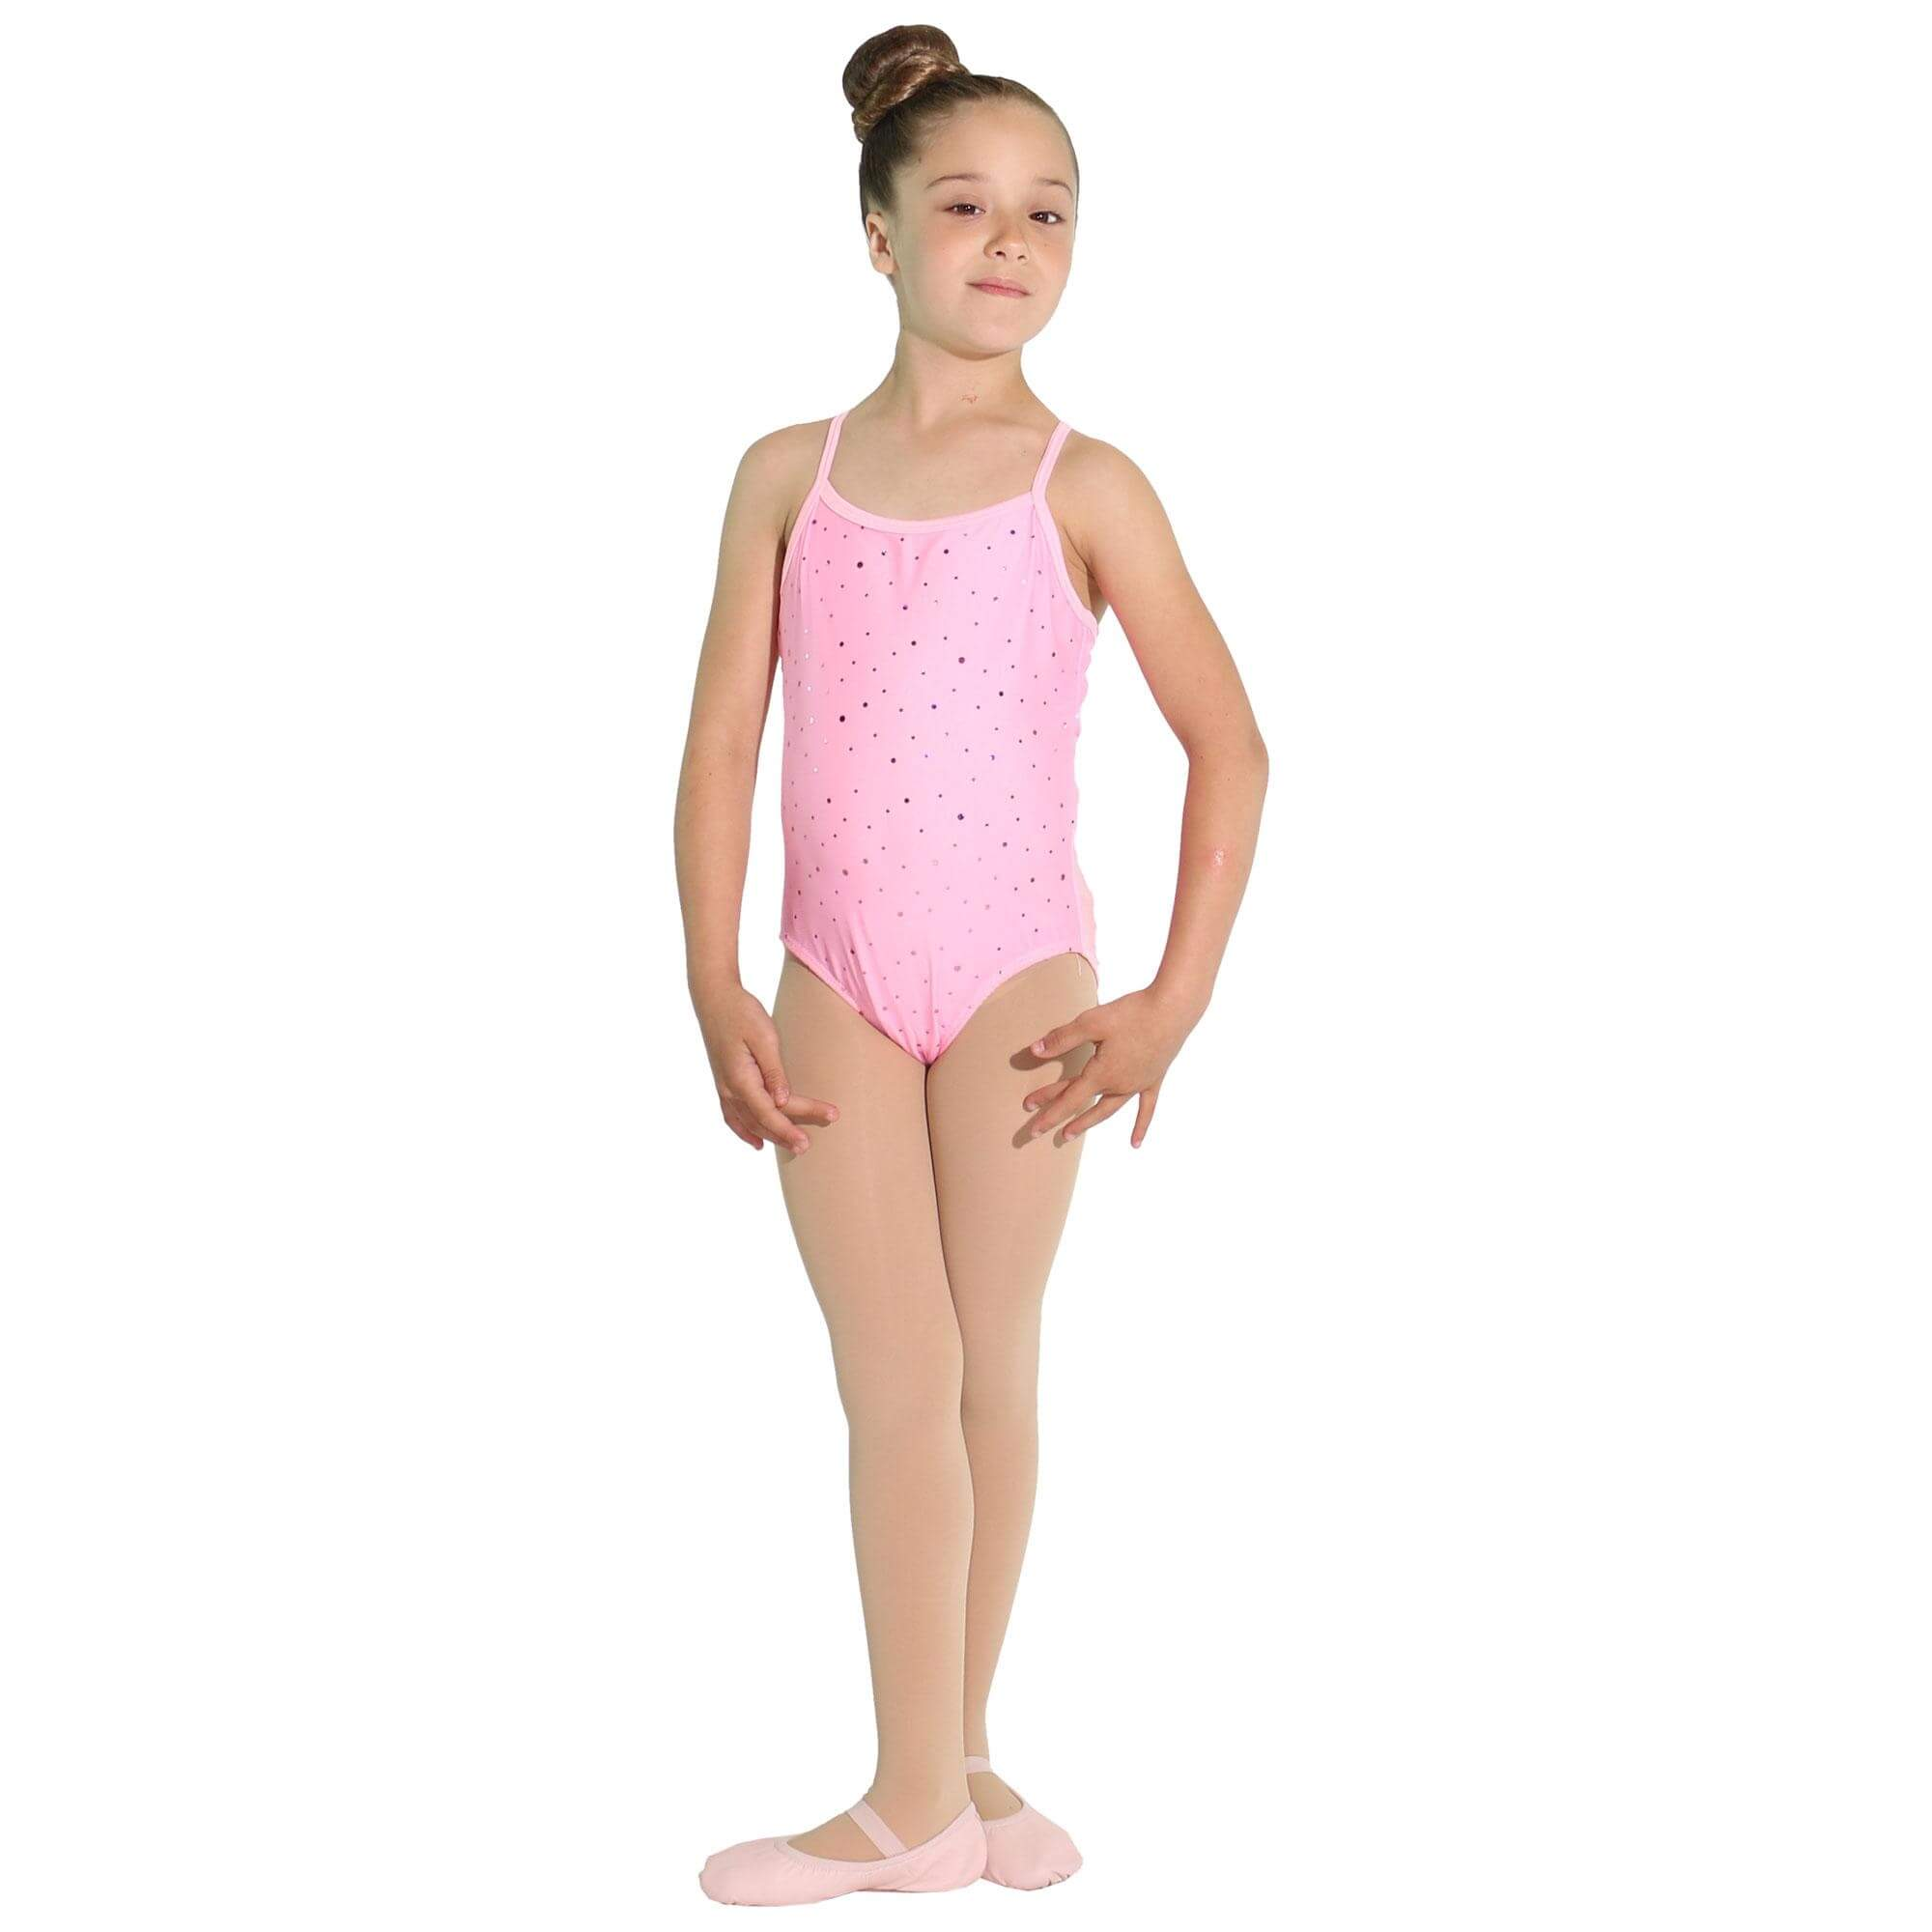 Reflectionz Sparkle Leotard